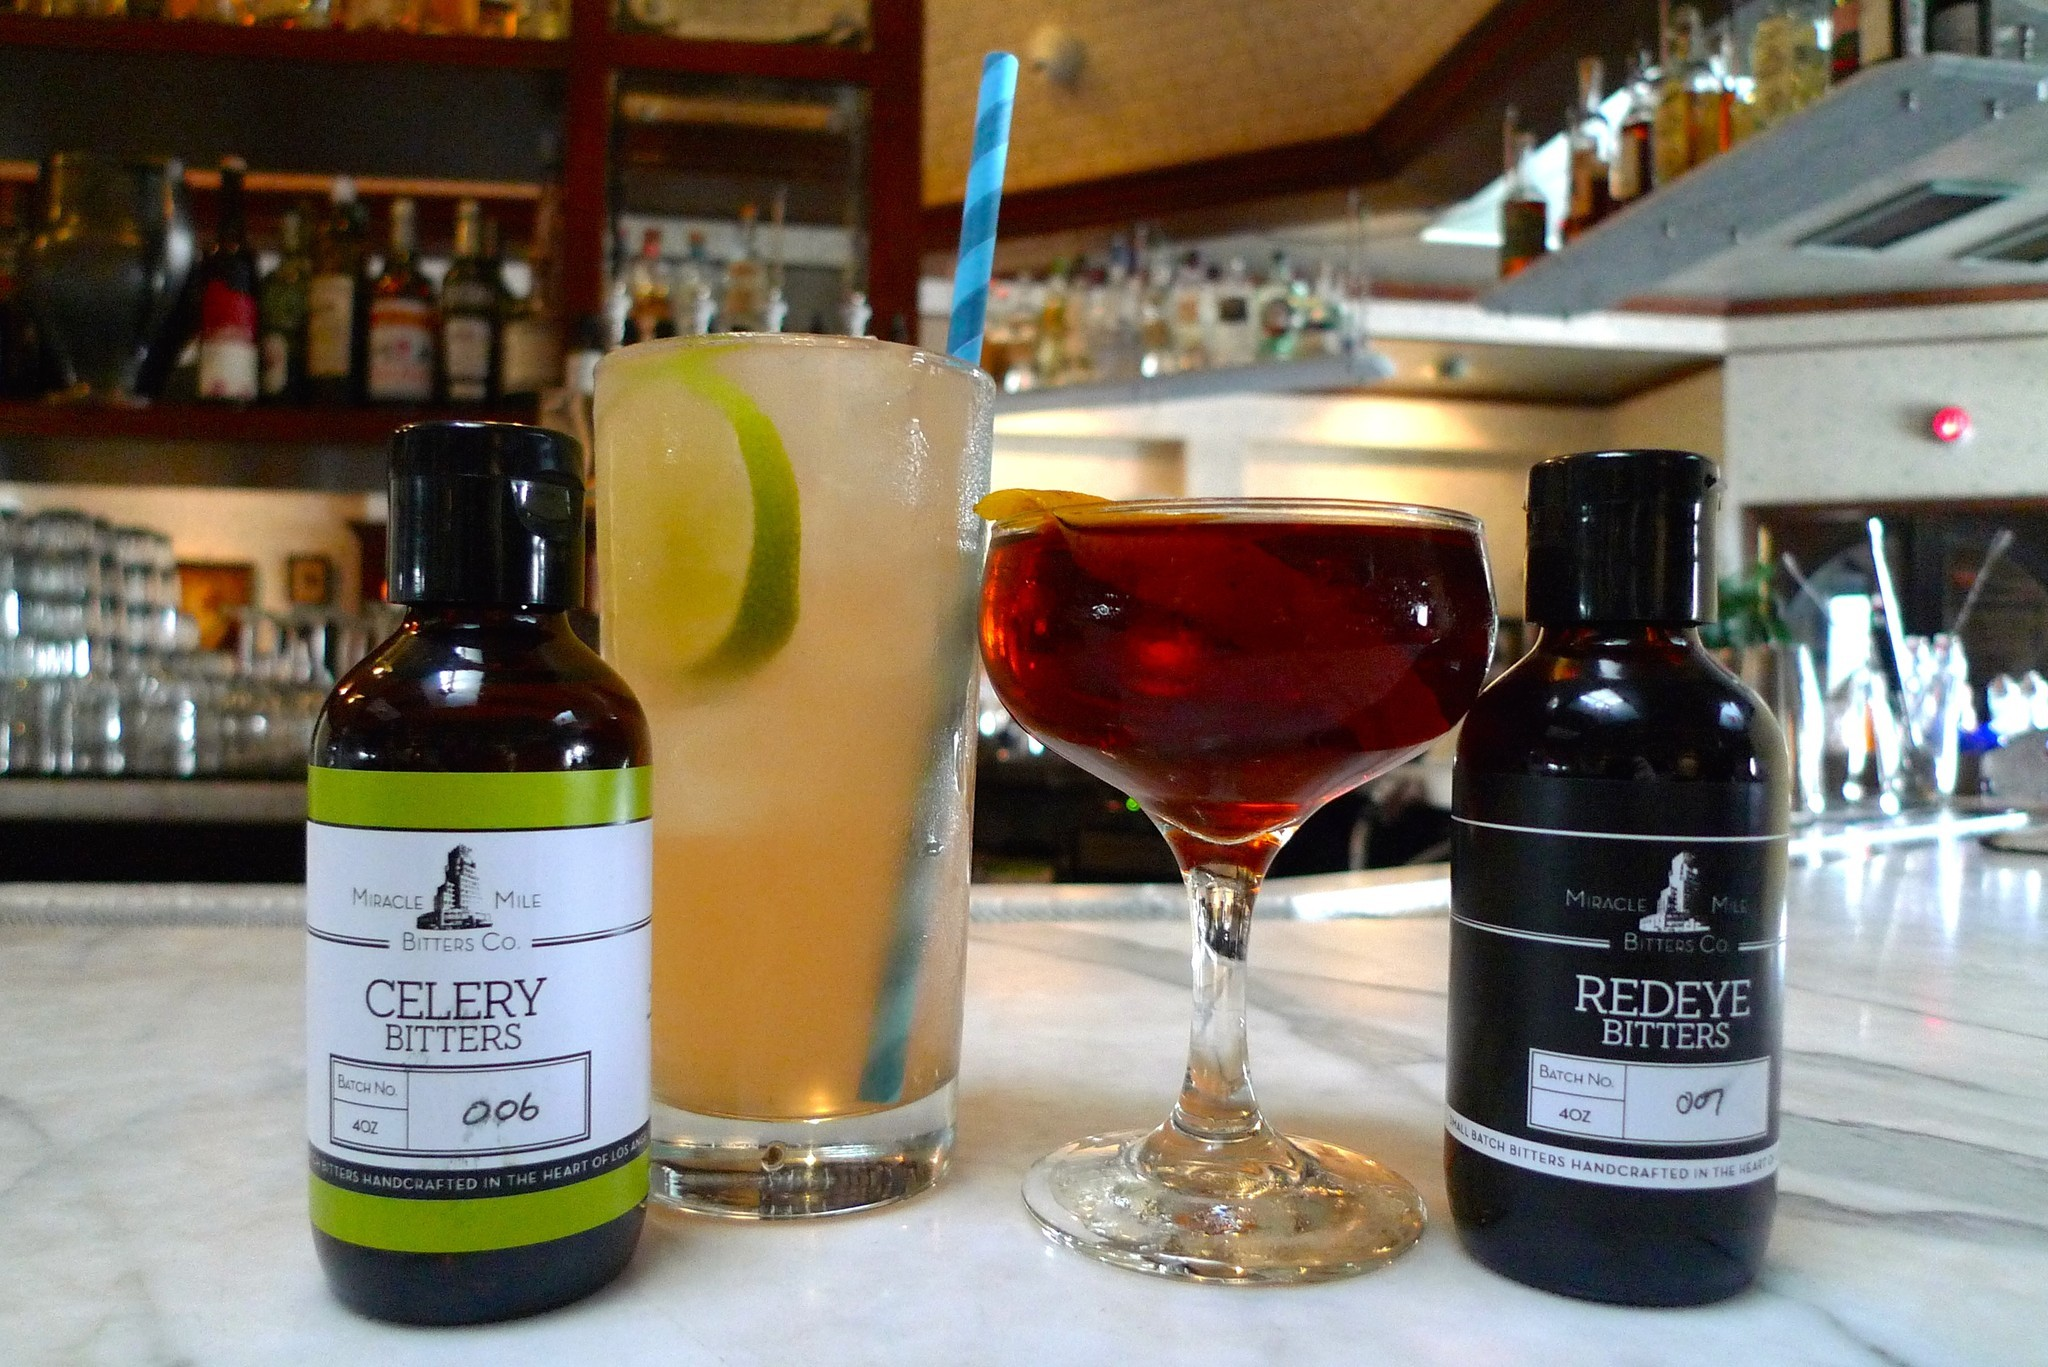 Bitters can add flavor to holiday cocktails recipes la for Cherry bitters cocktail recipe